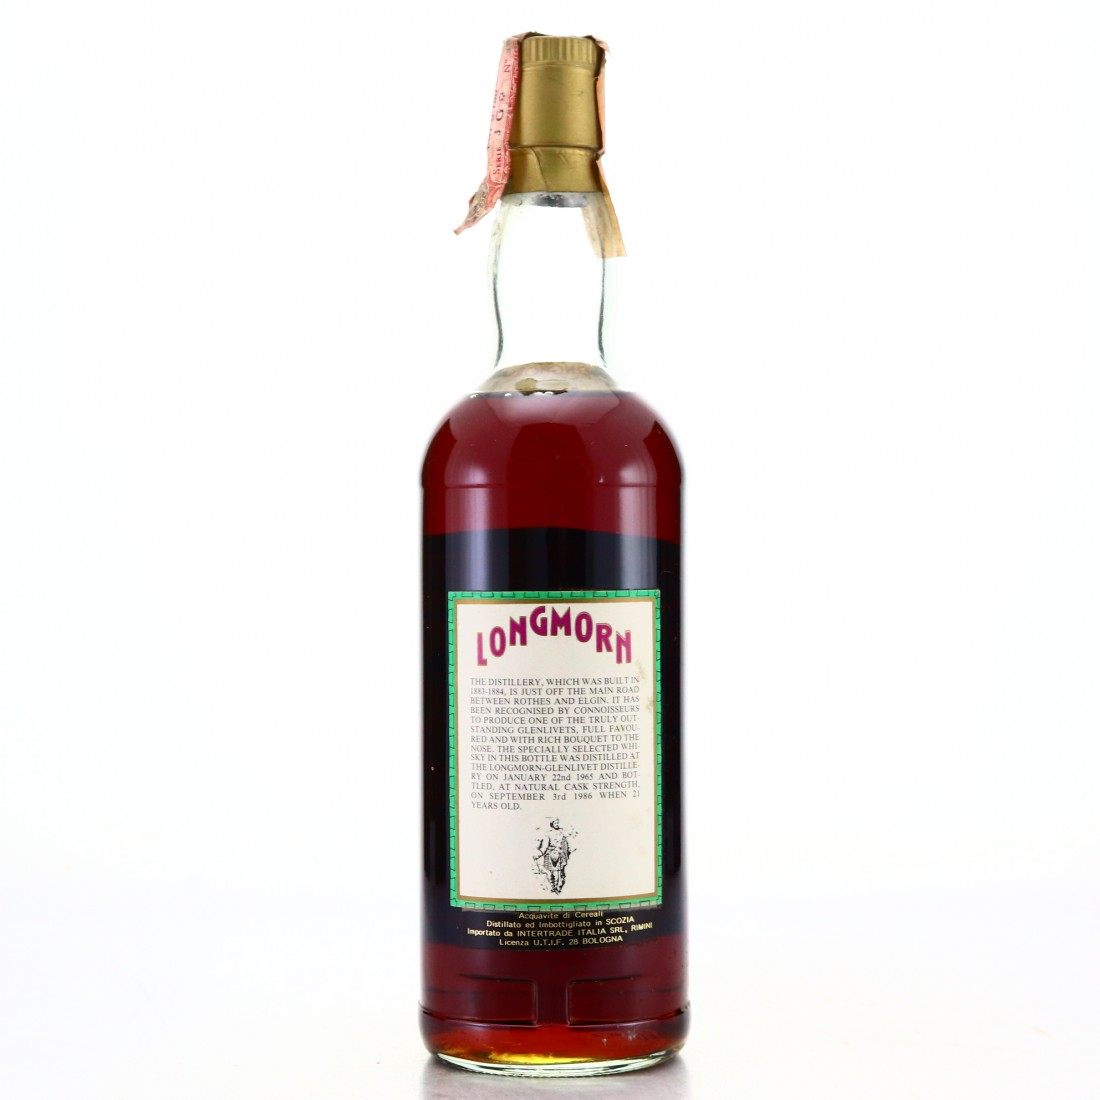 Longmorn 1965 Intertrade 21 Year Old Cask Strength